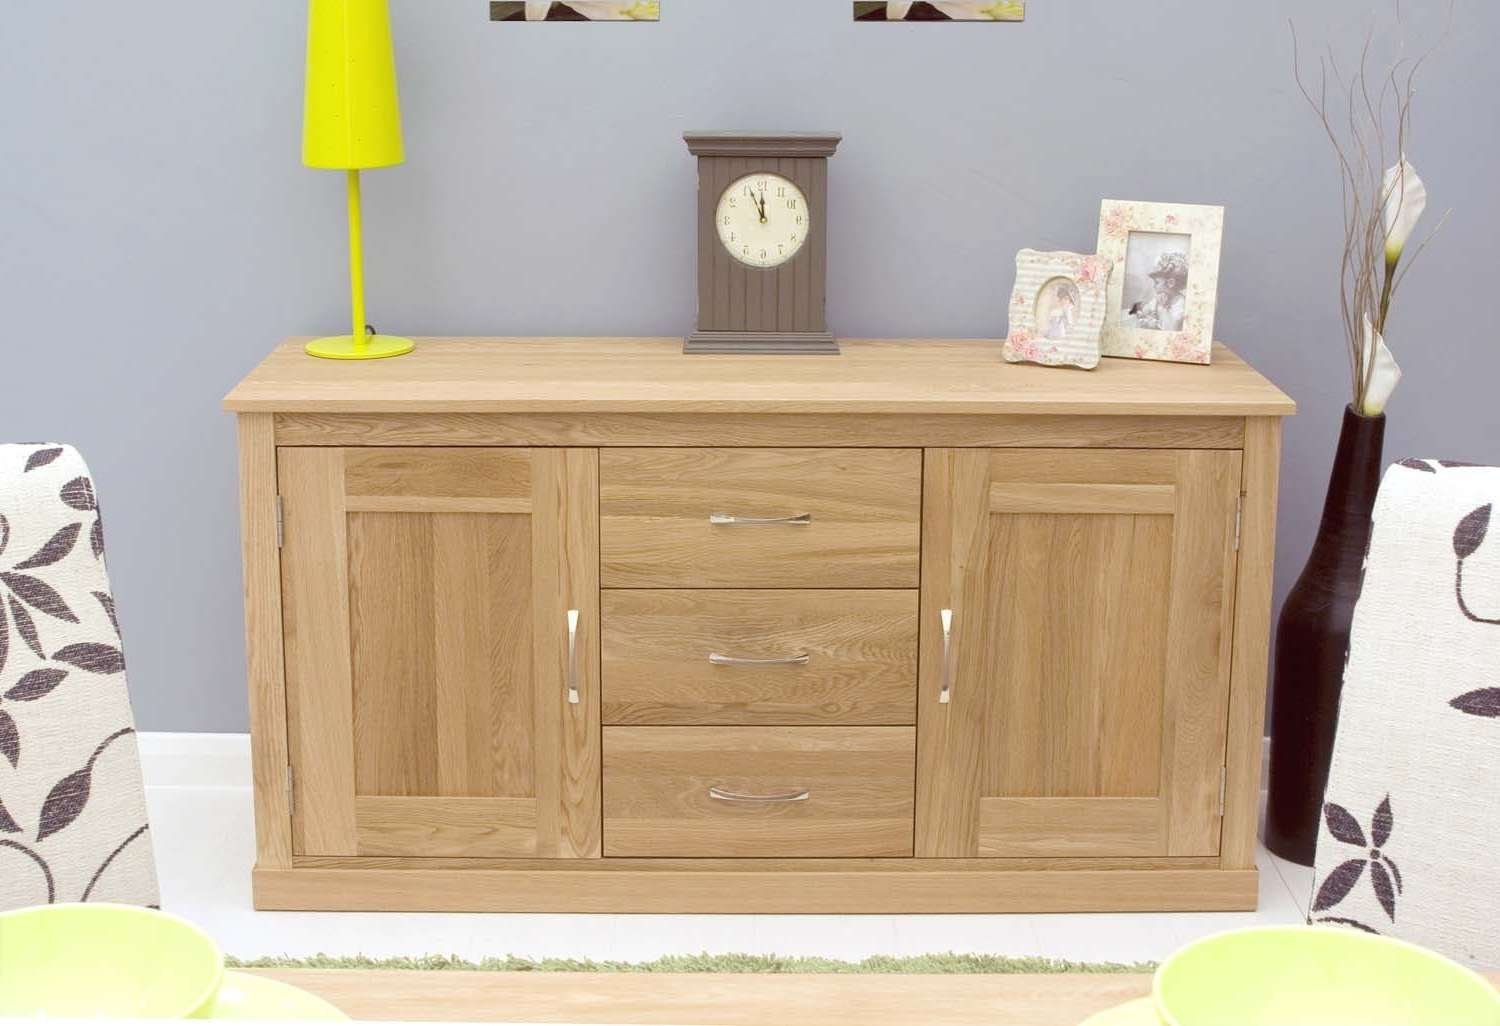 Modern Light Oak Sideboards And Console Table | Solid Oak With Sideboards (View 13 of 20)